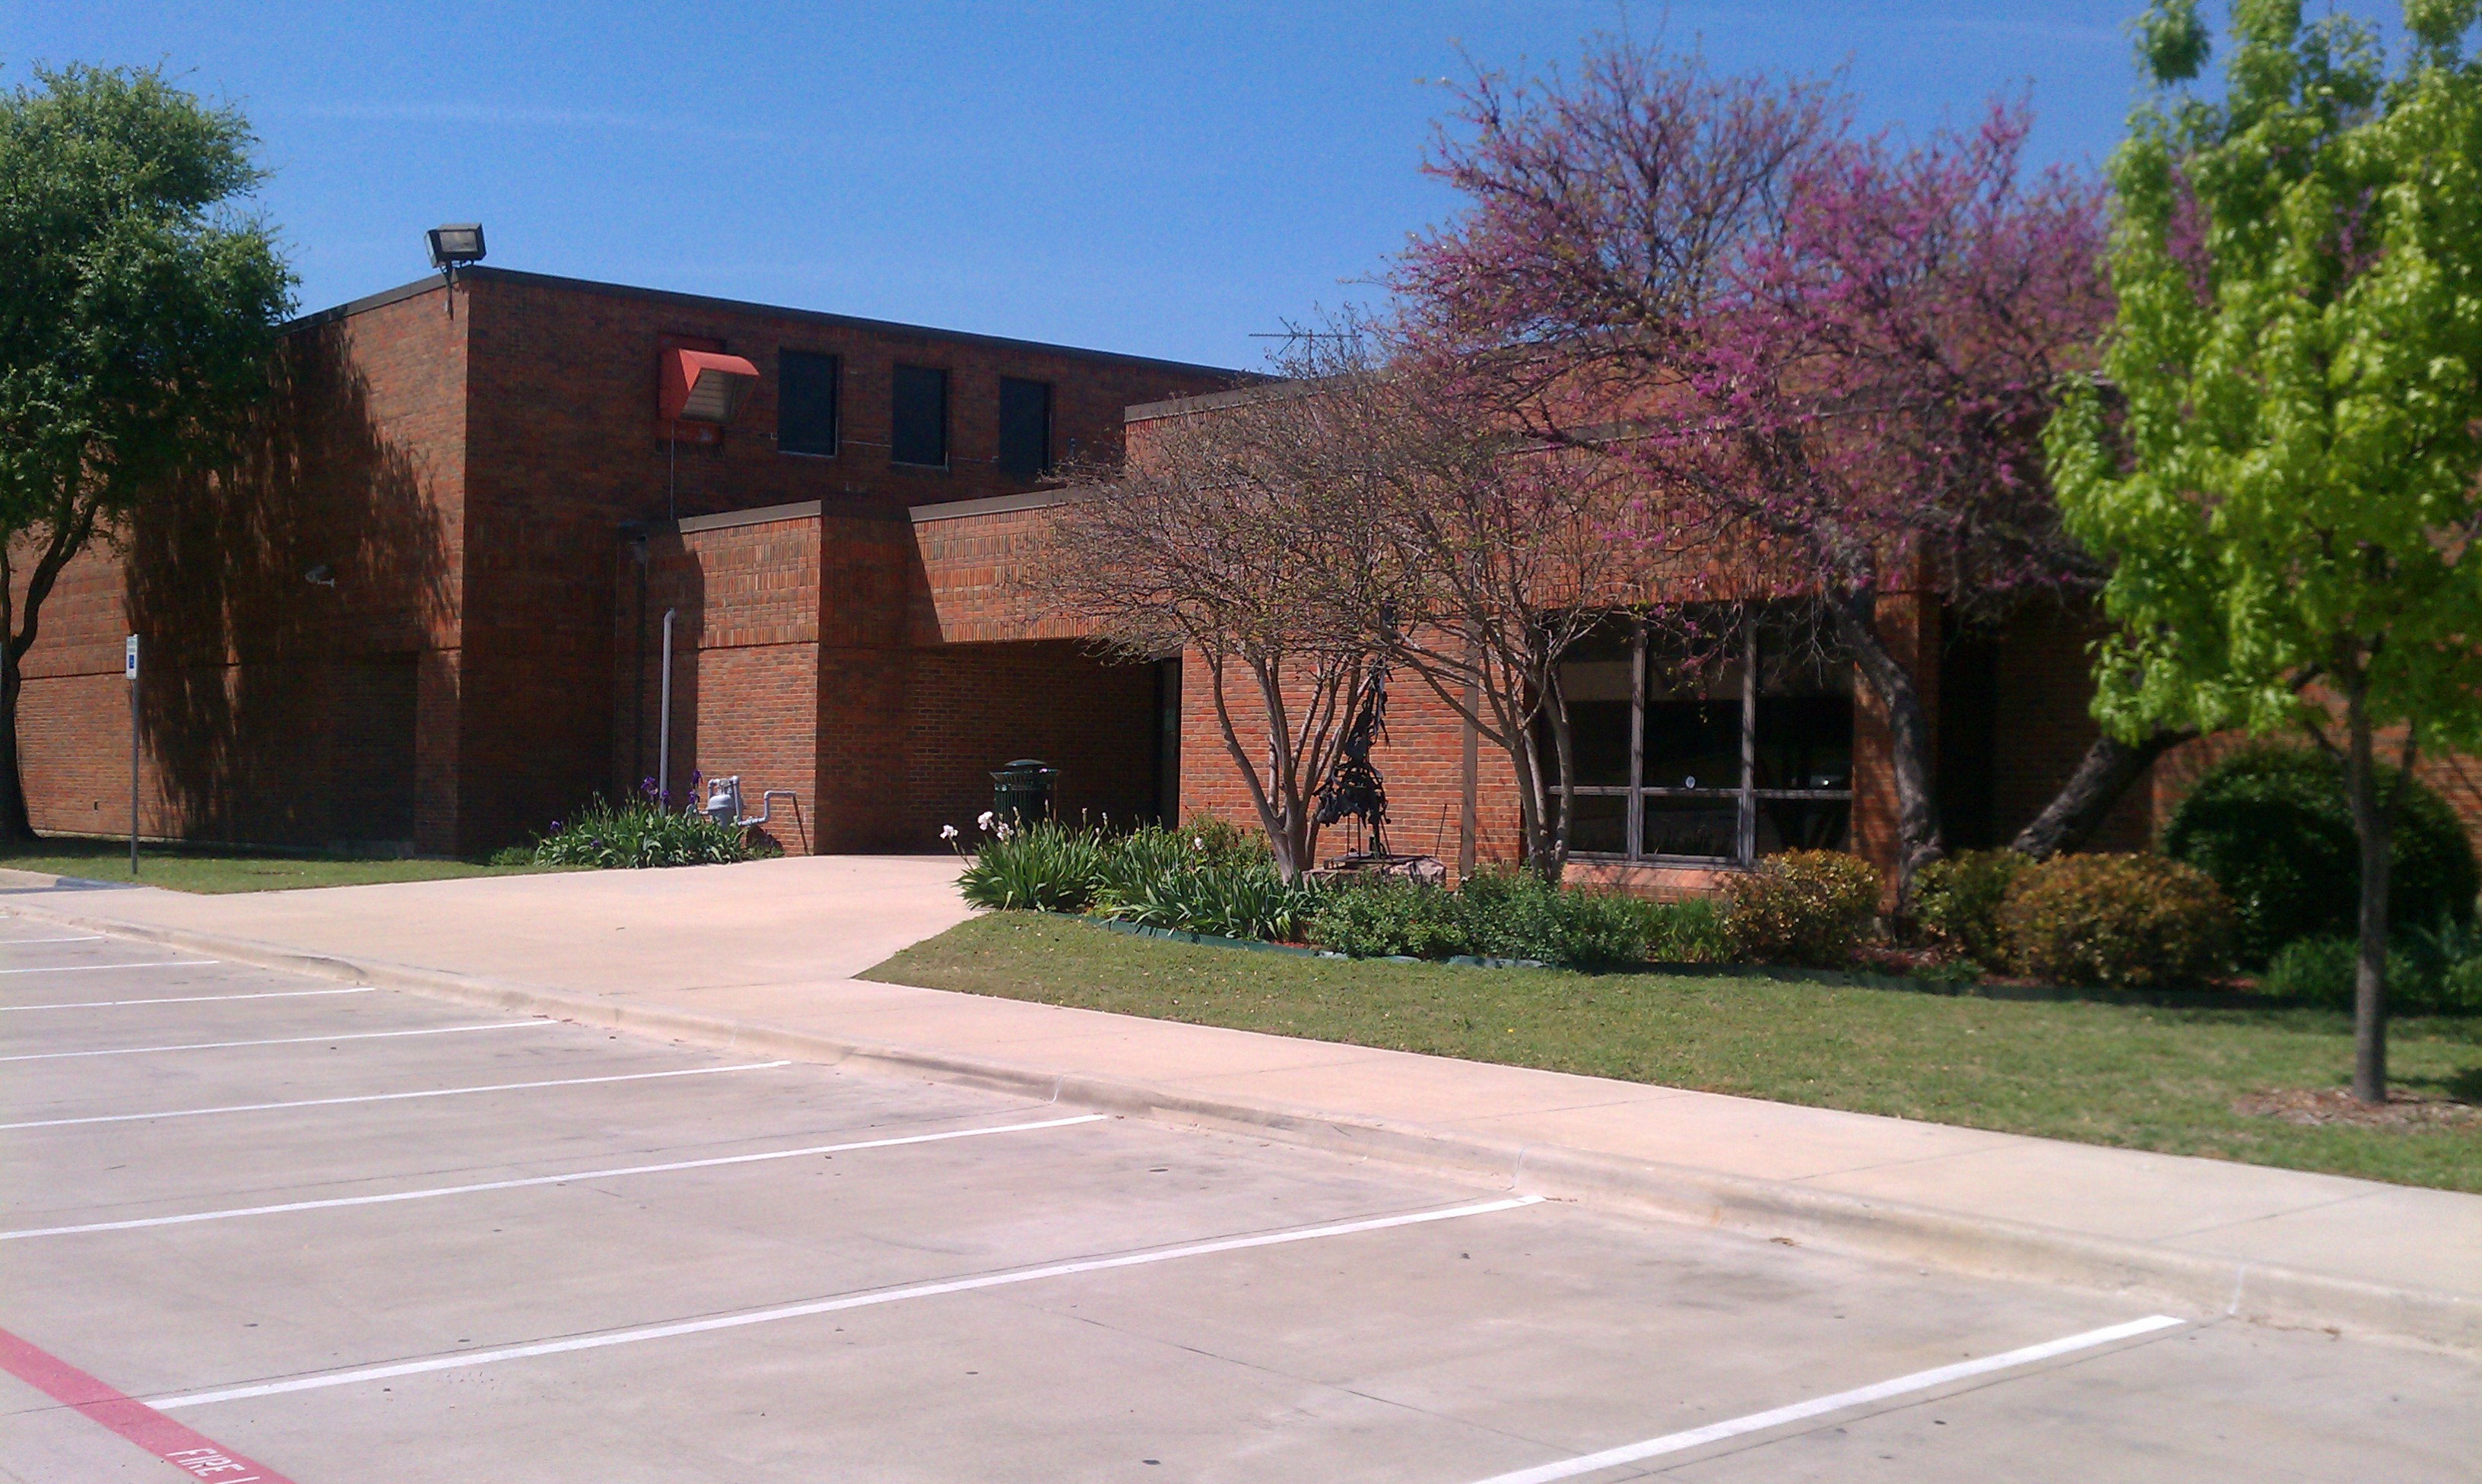 Fretz Recreation Center